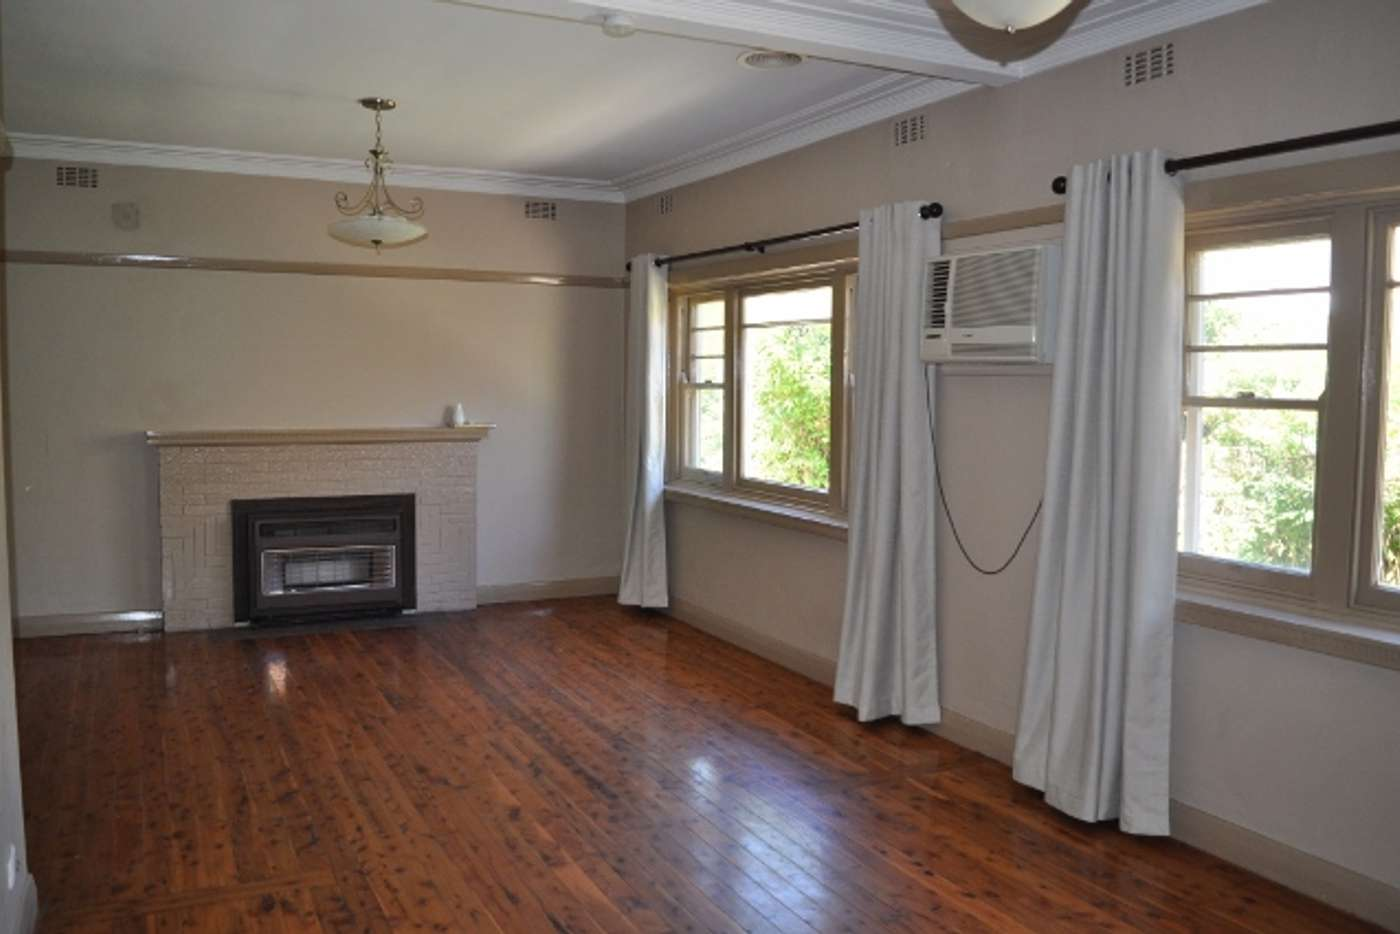 Sixth view of Homely house listing, 735 Alma St, Albury NSW 2640